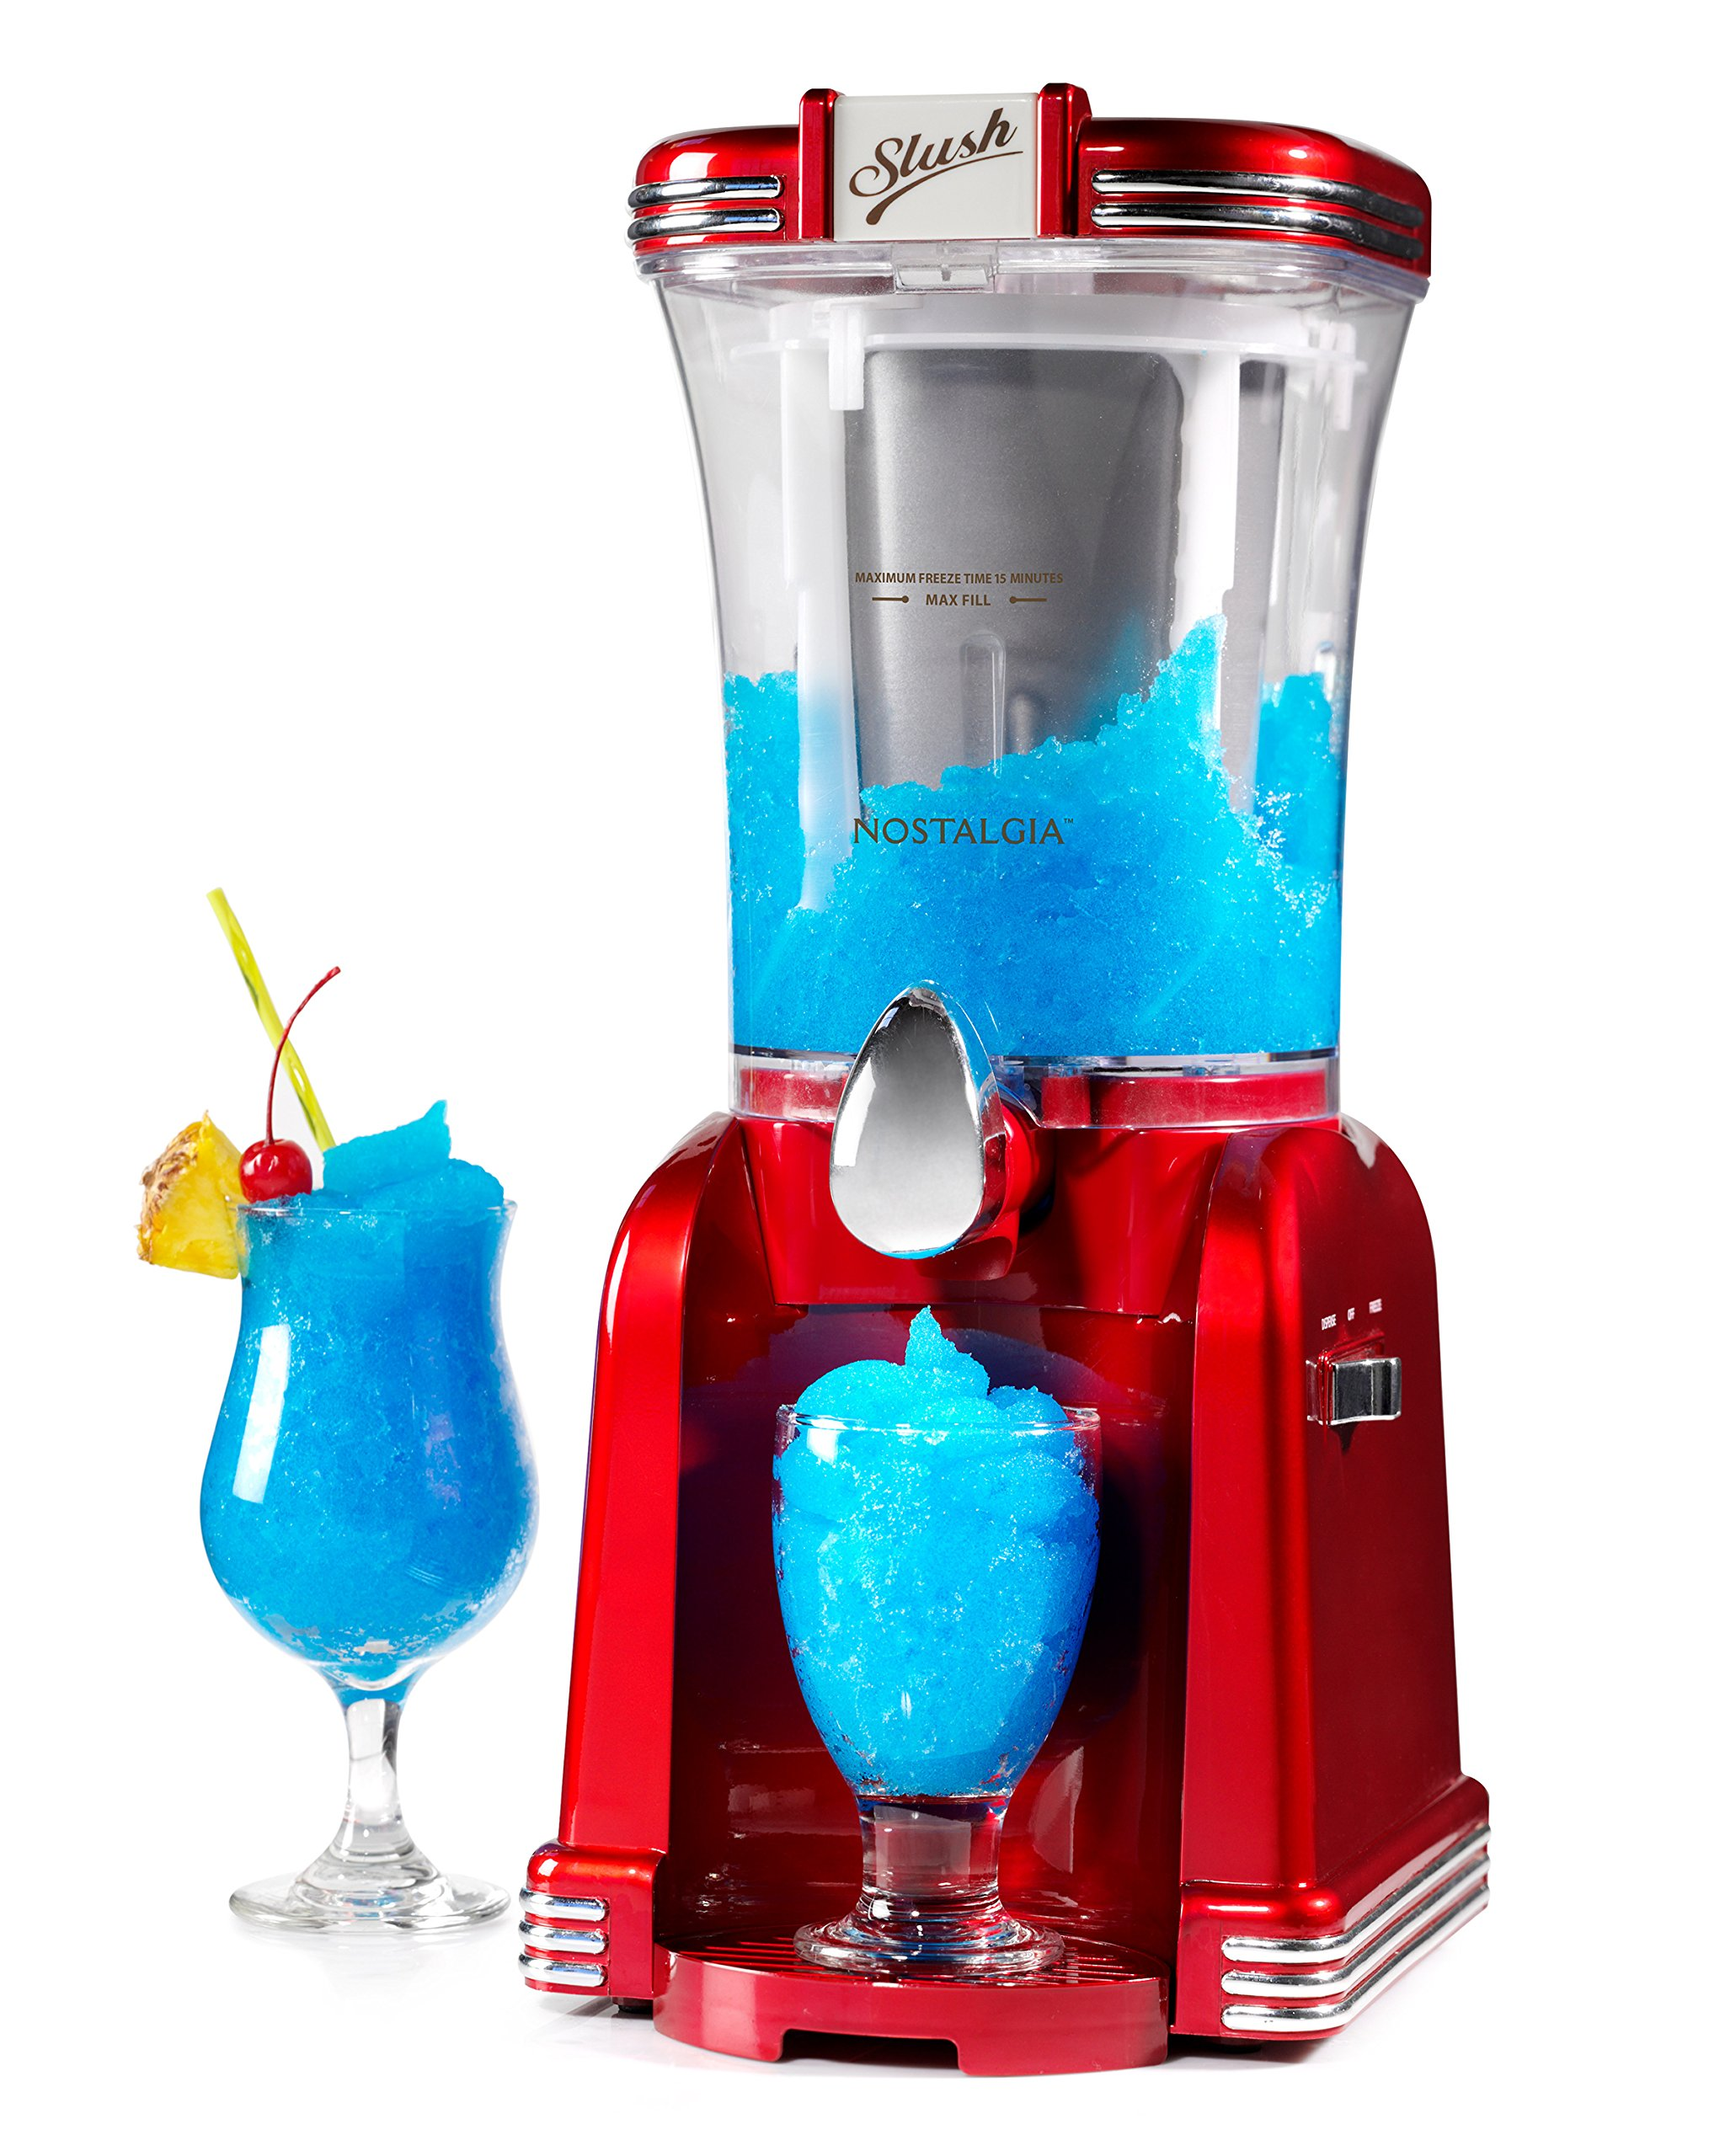 Nostalgia RSM650 32- Ounce Slush Drink Maker, Retro Red by NOSTALGIA